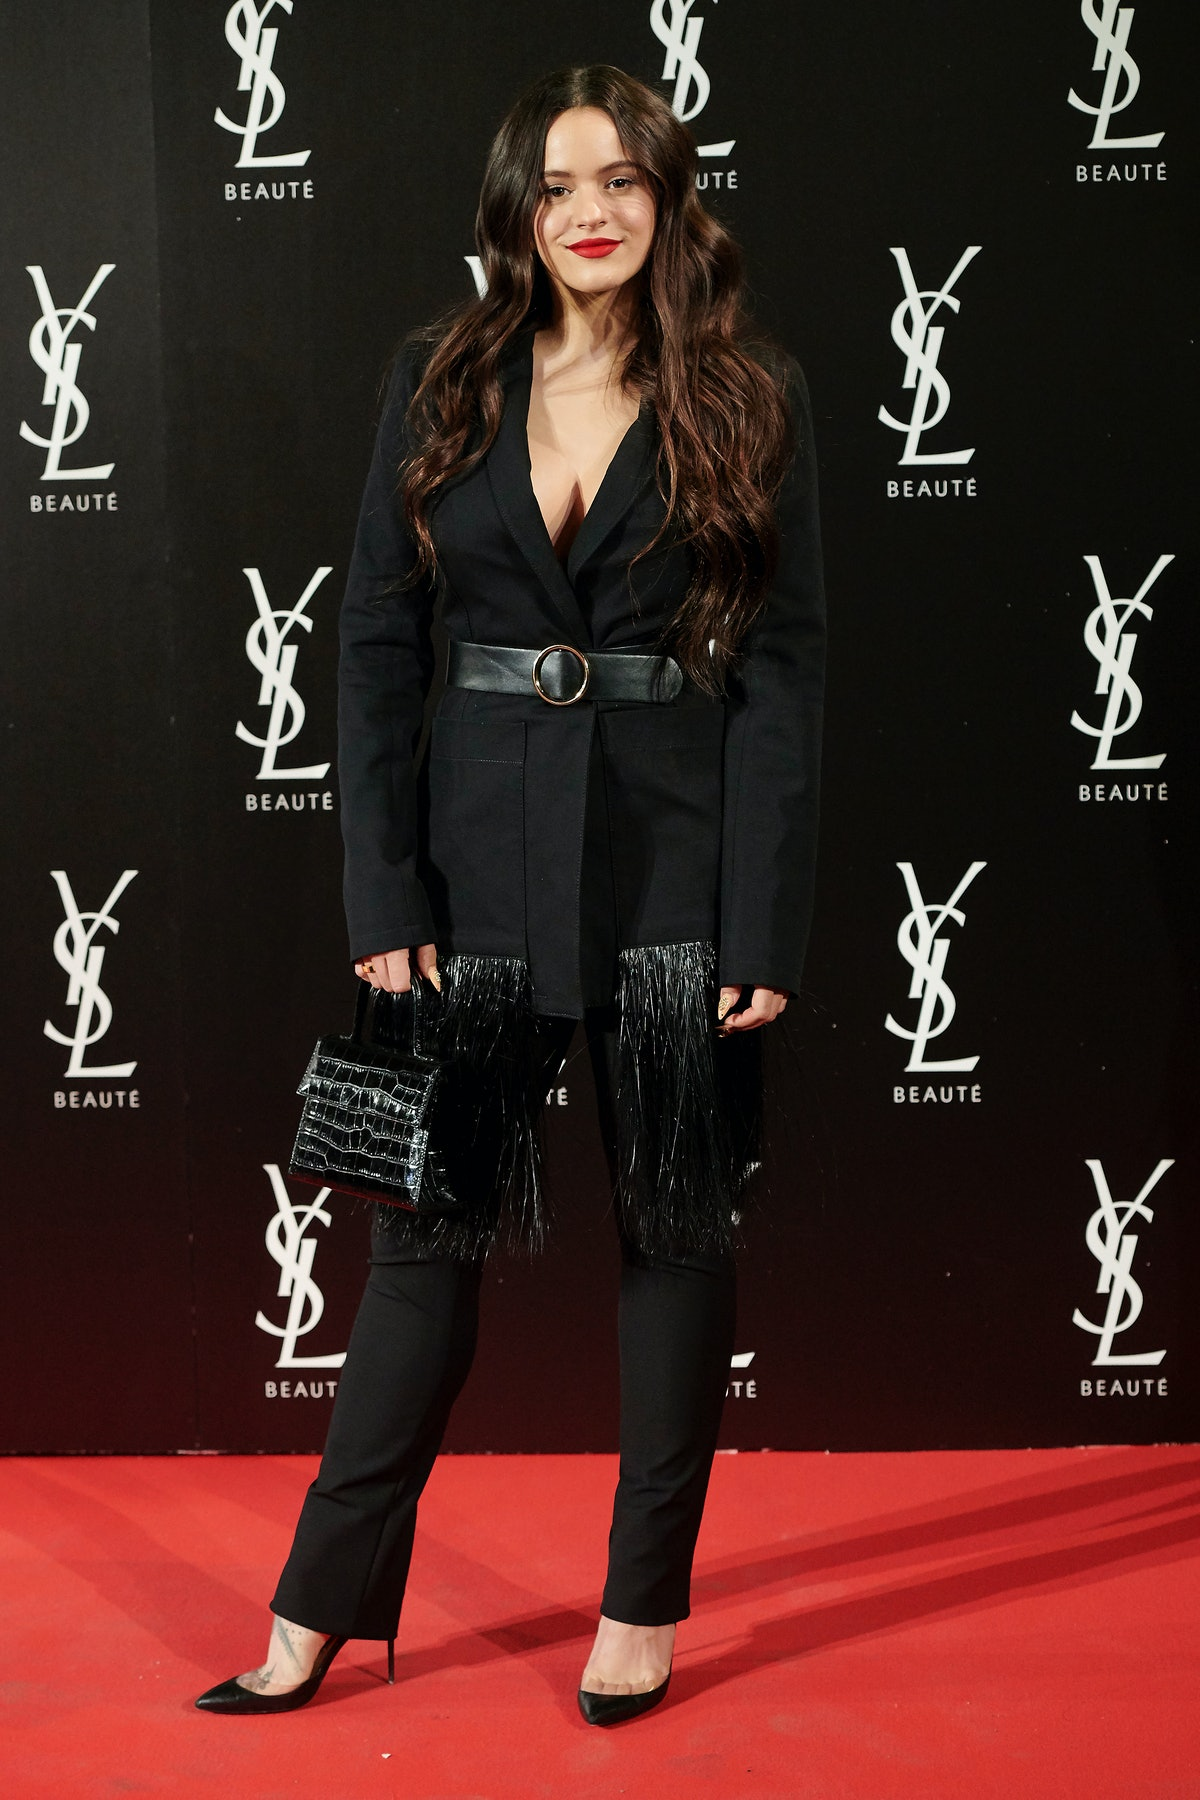 Yves Saint Laurent The Slim Rouge PurCouture Party Photocall